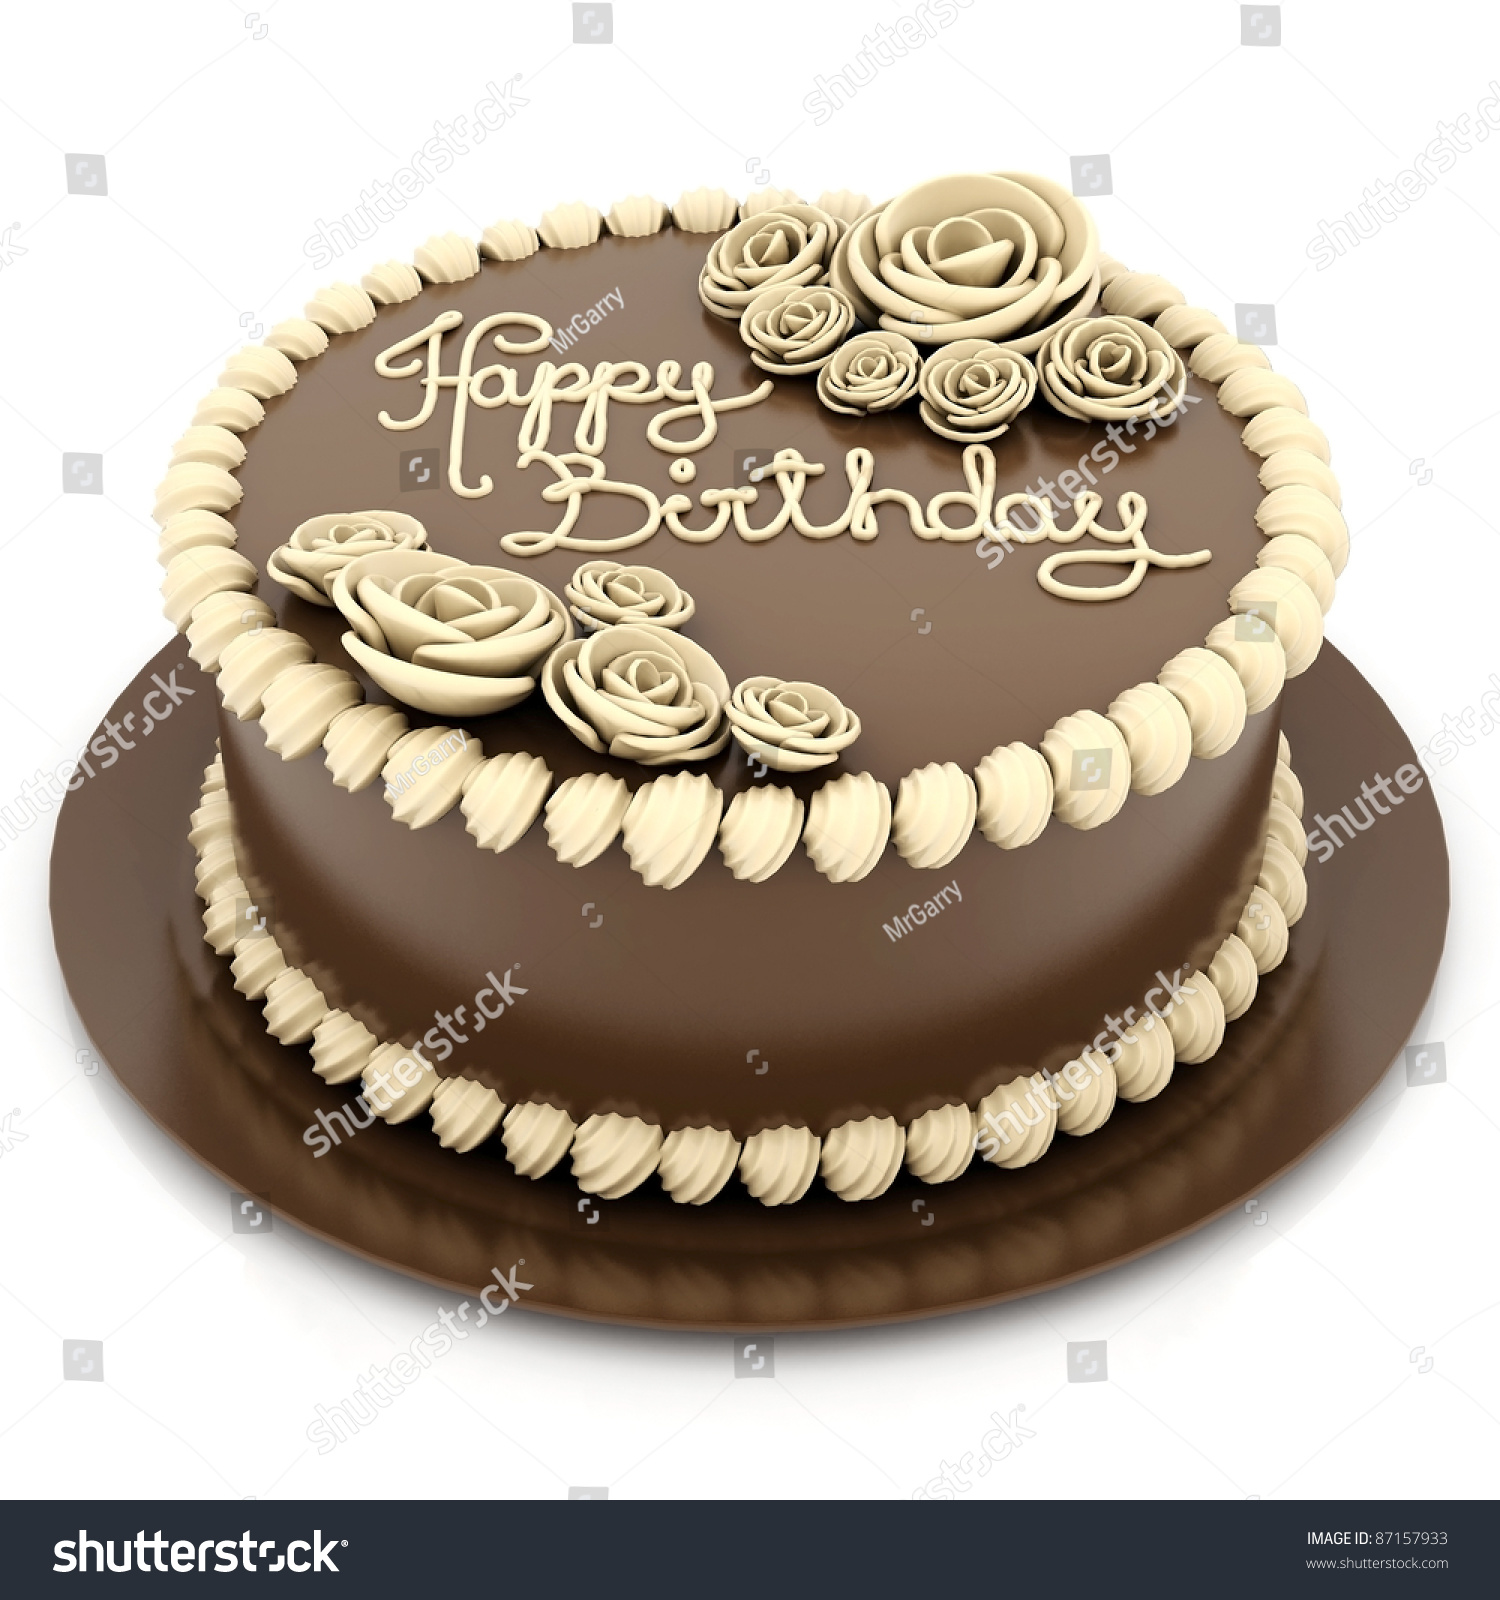 A Beautiful Cake On A White Background Stock Photo